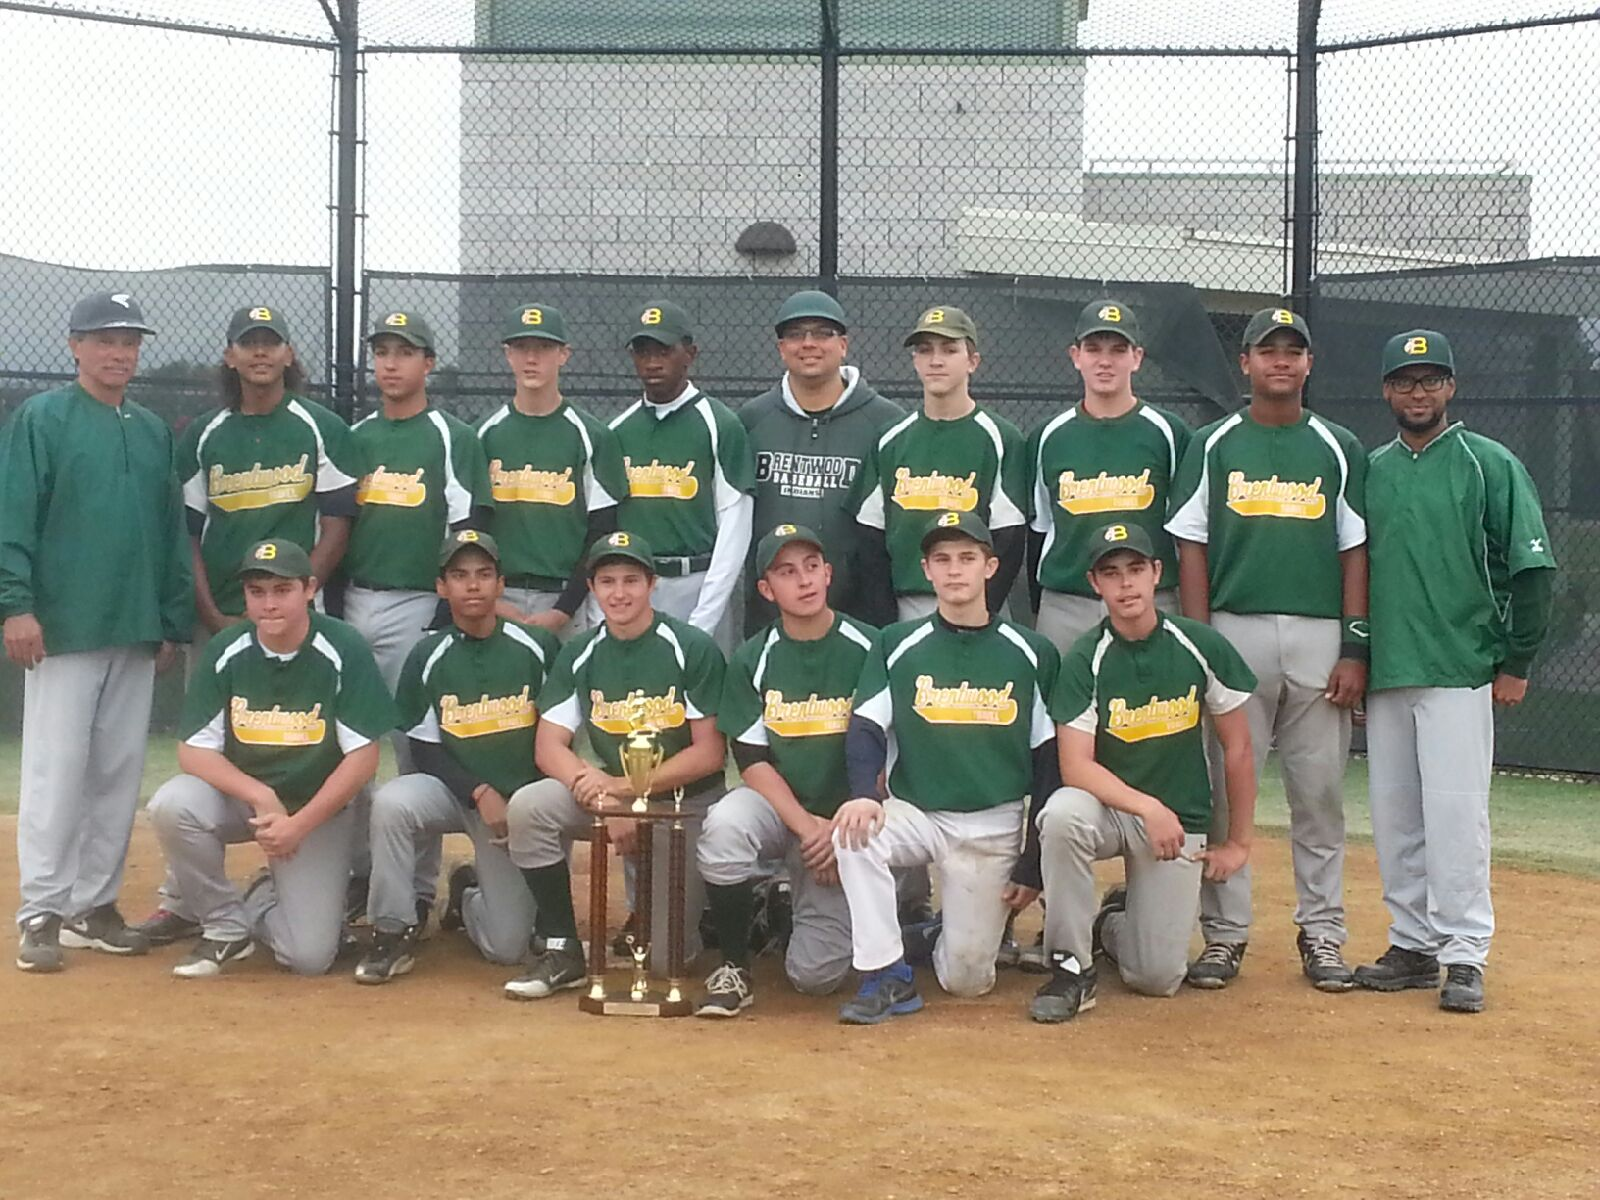 Braves 14 Champs